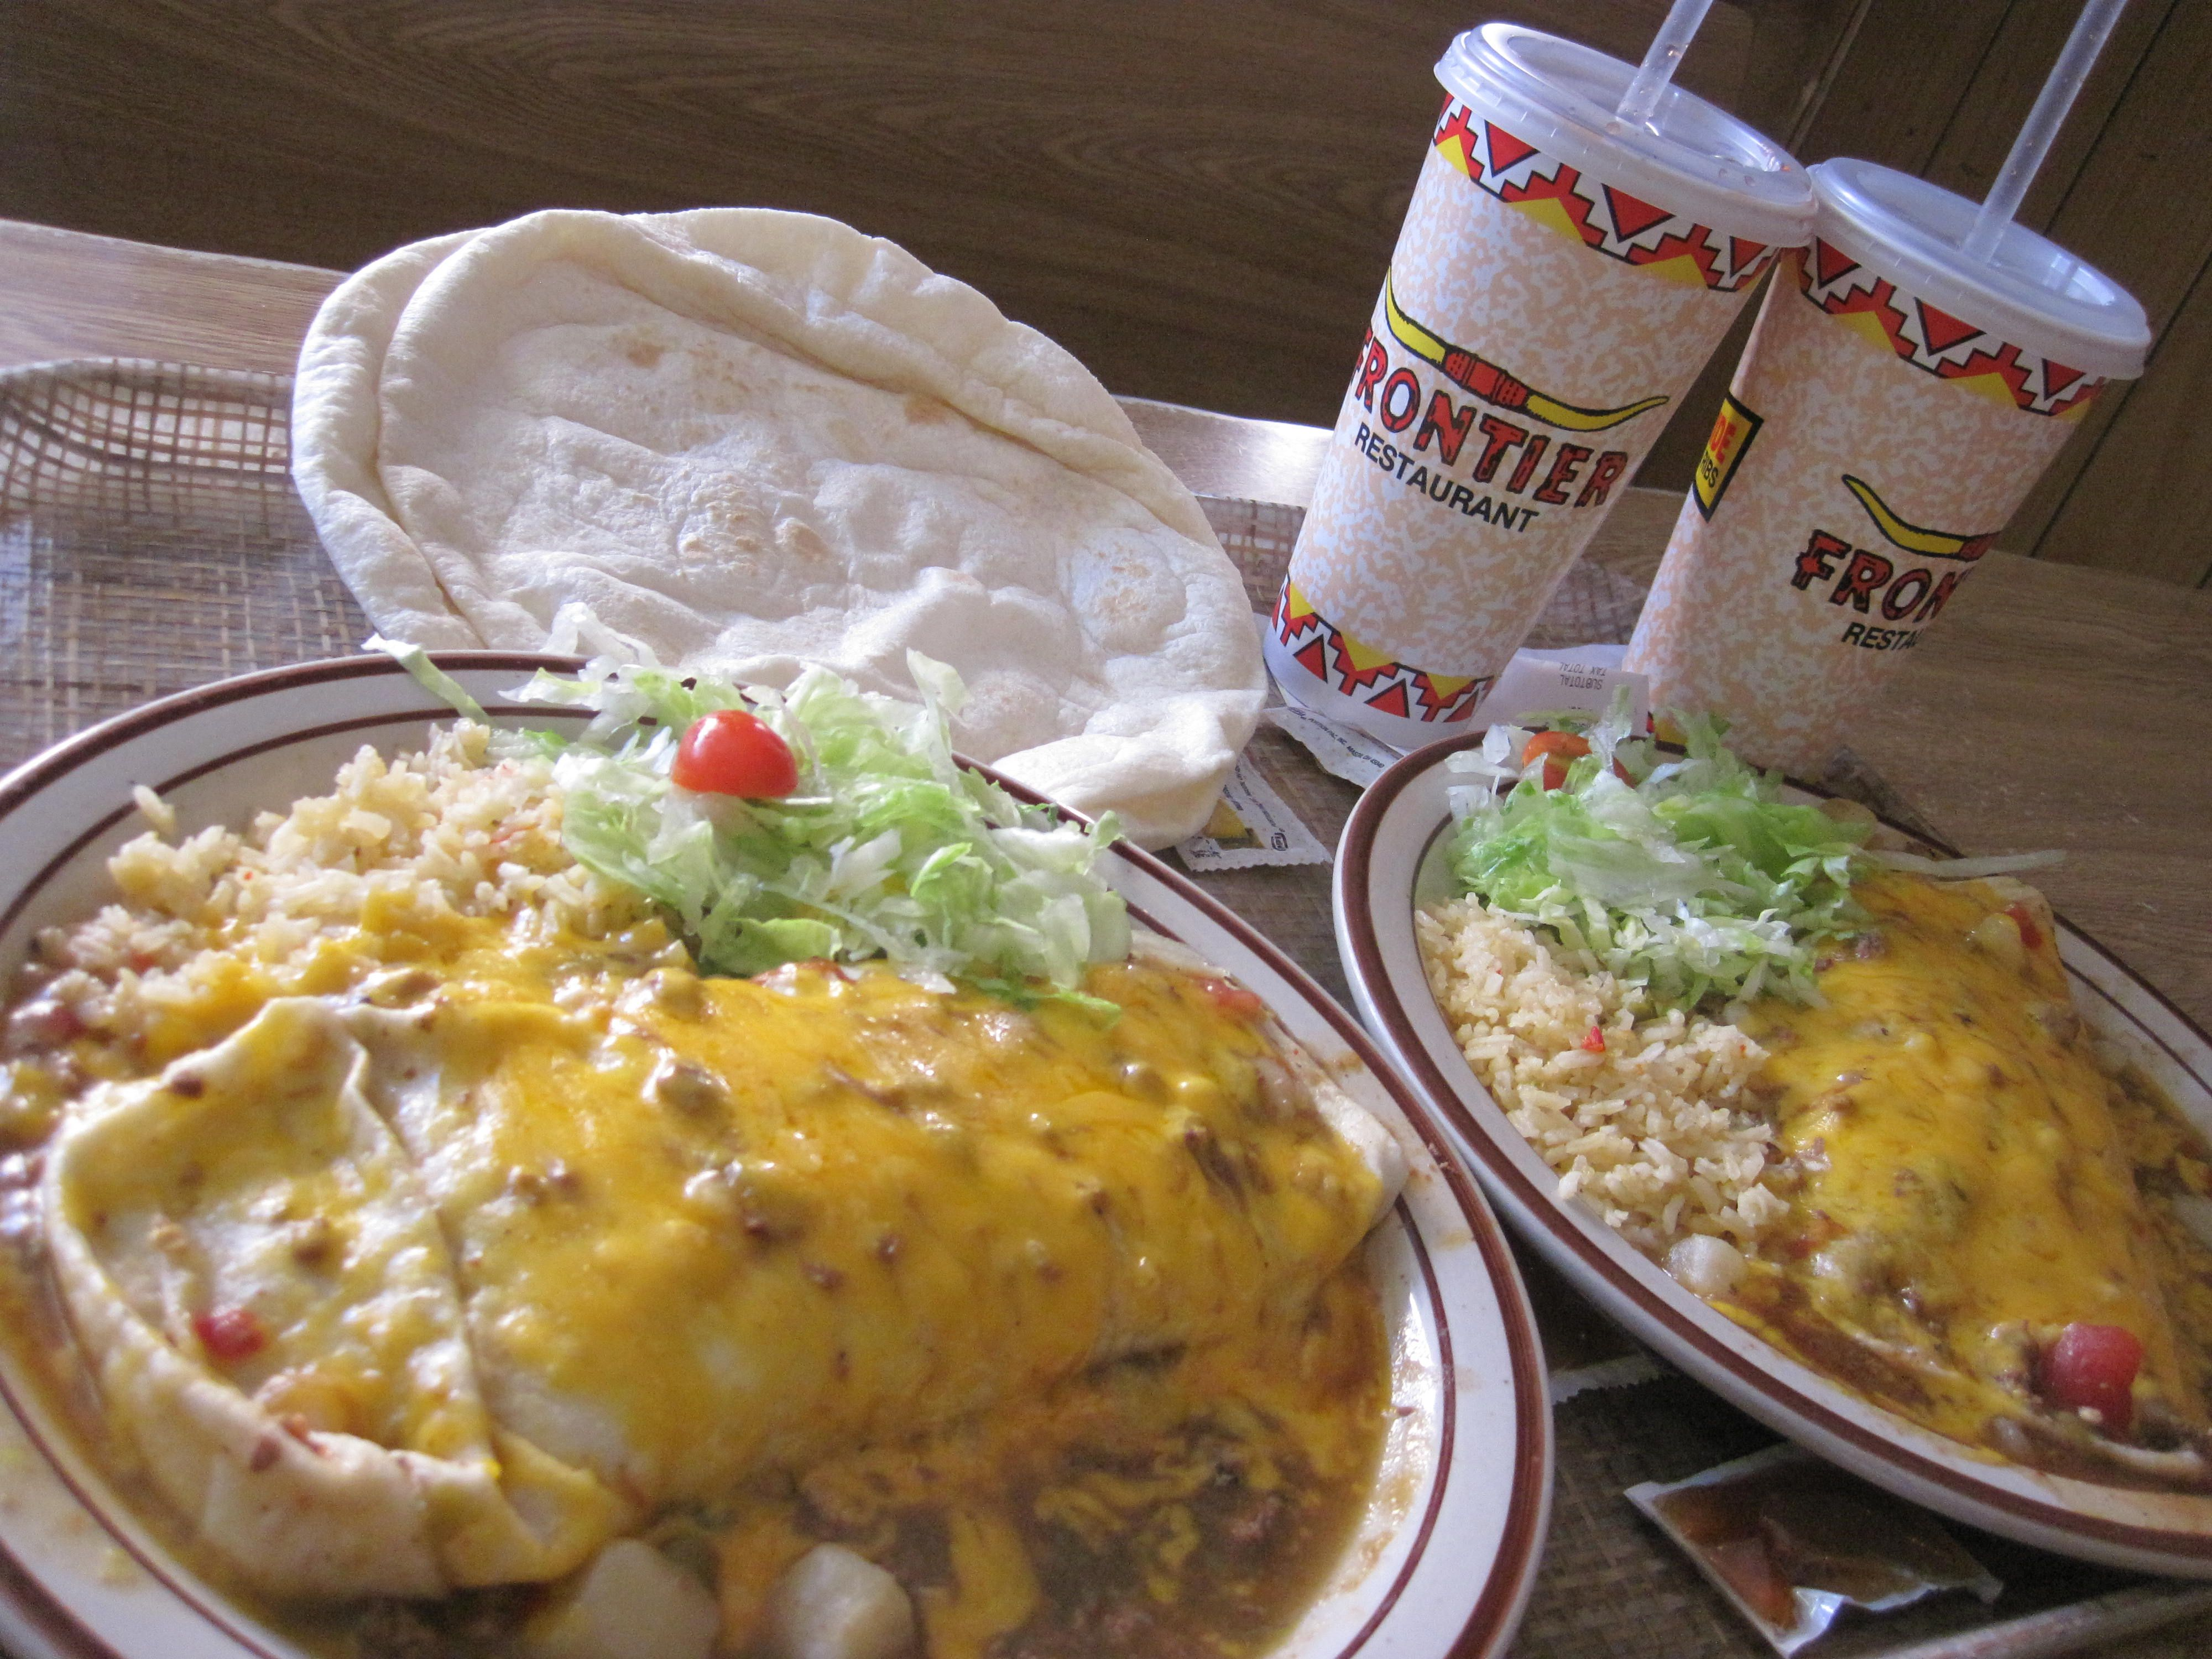 Frontier Burrito Beef Beans Green Chile Inside Green Chile Stew Cheese On Top W Rice And Flour Torti Mexico Food Best Lunch Recipes Mexican Food Recipes